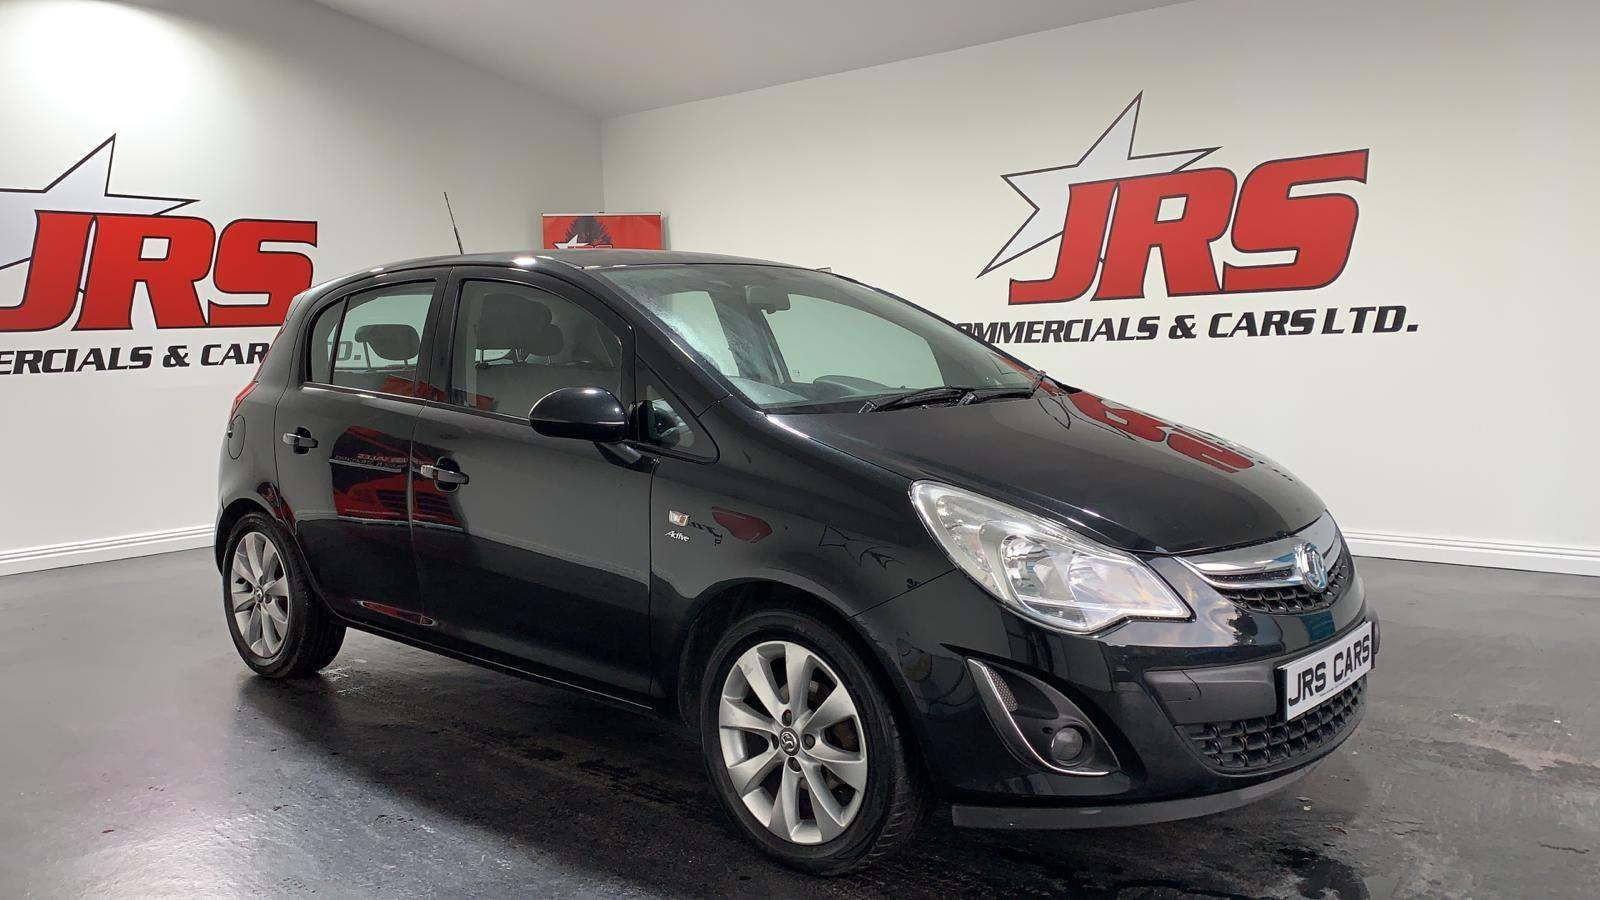 2012 VAUXHALL Corsa 1.3 CDTi ecoFLEX 16v Active  (a/c) Diesel Manual Half Leather Seats – J R S Commercials And Cars Dungannon full